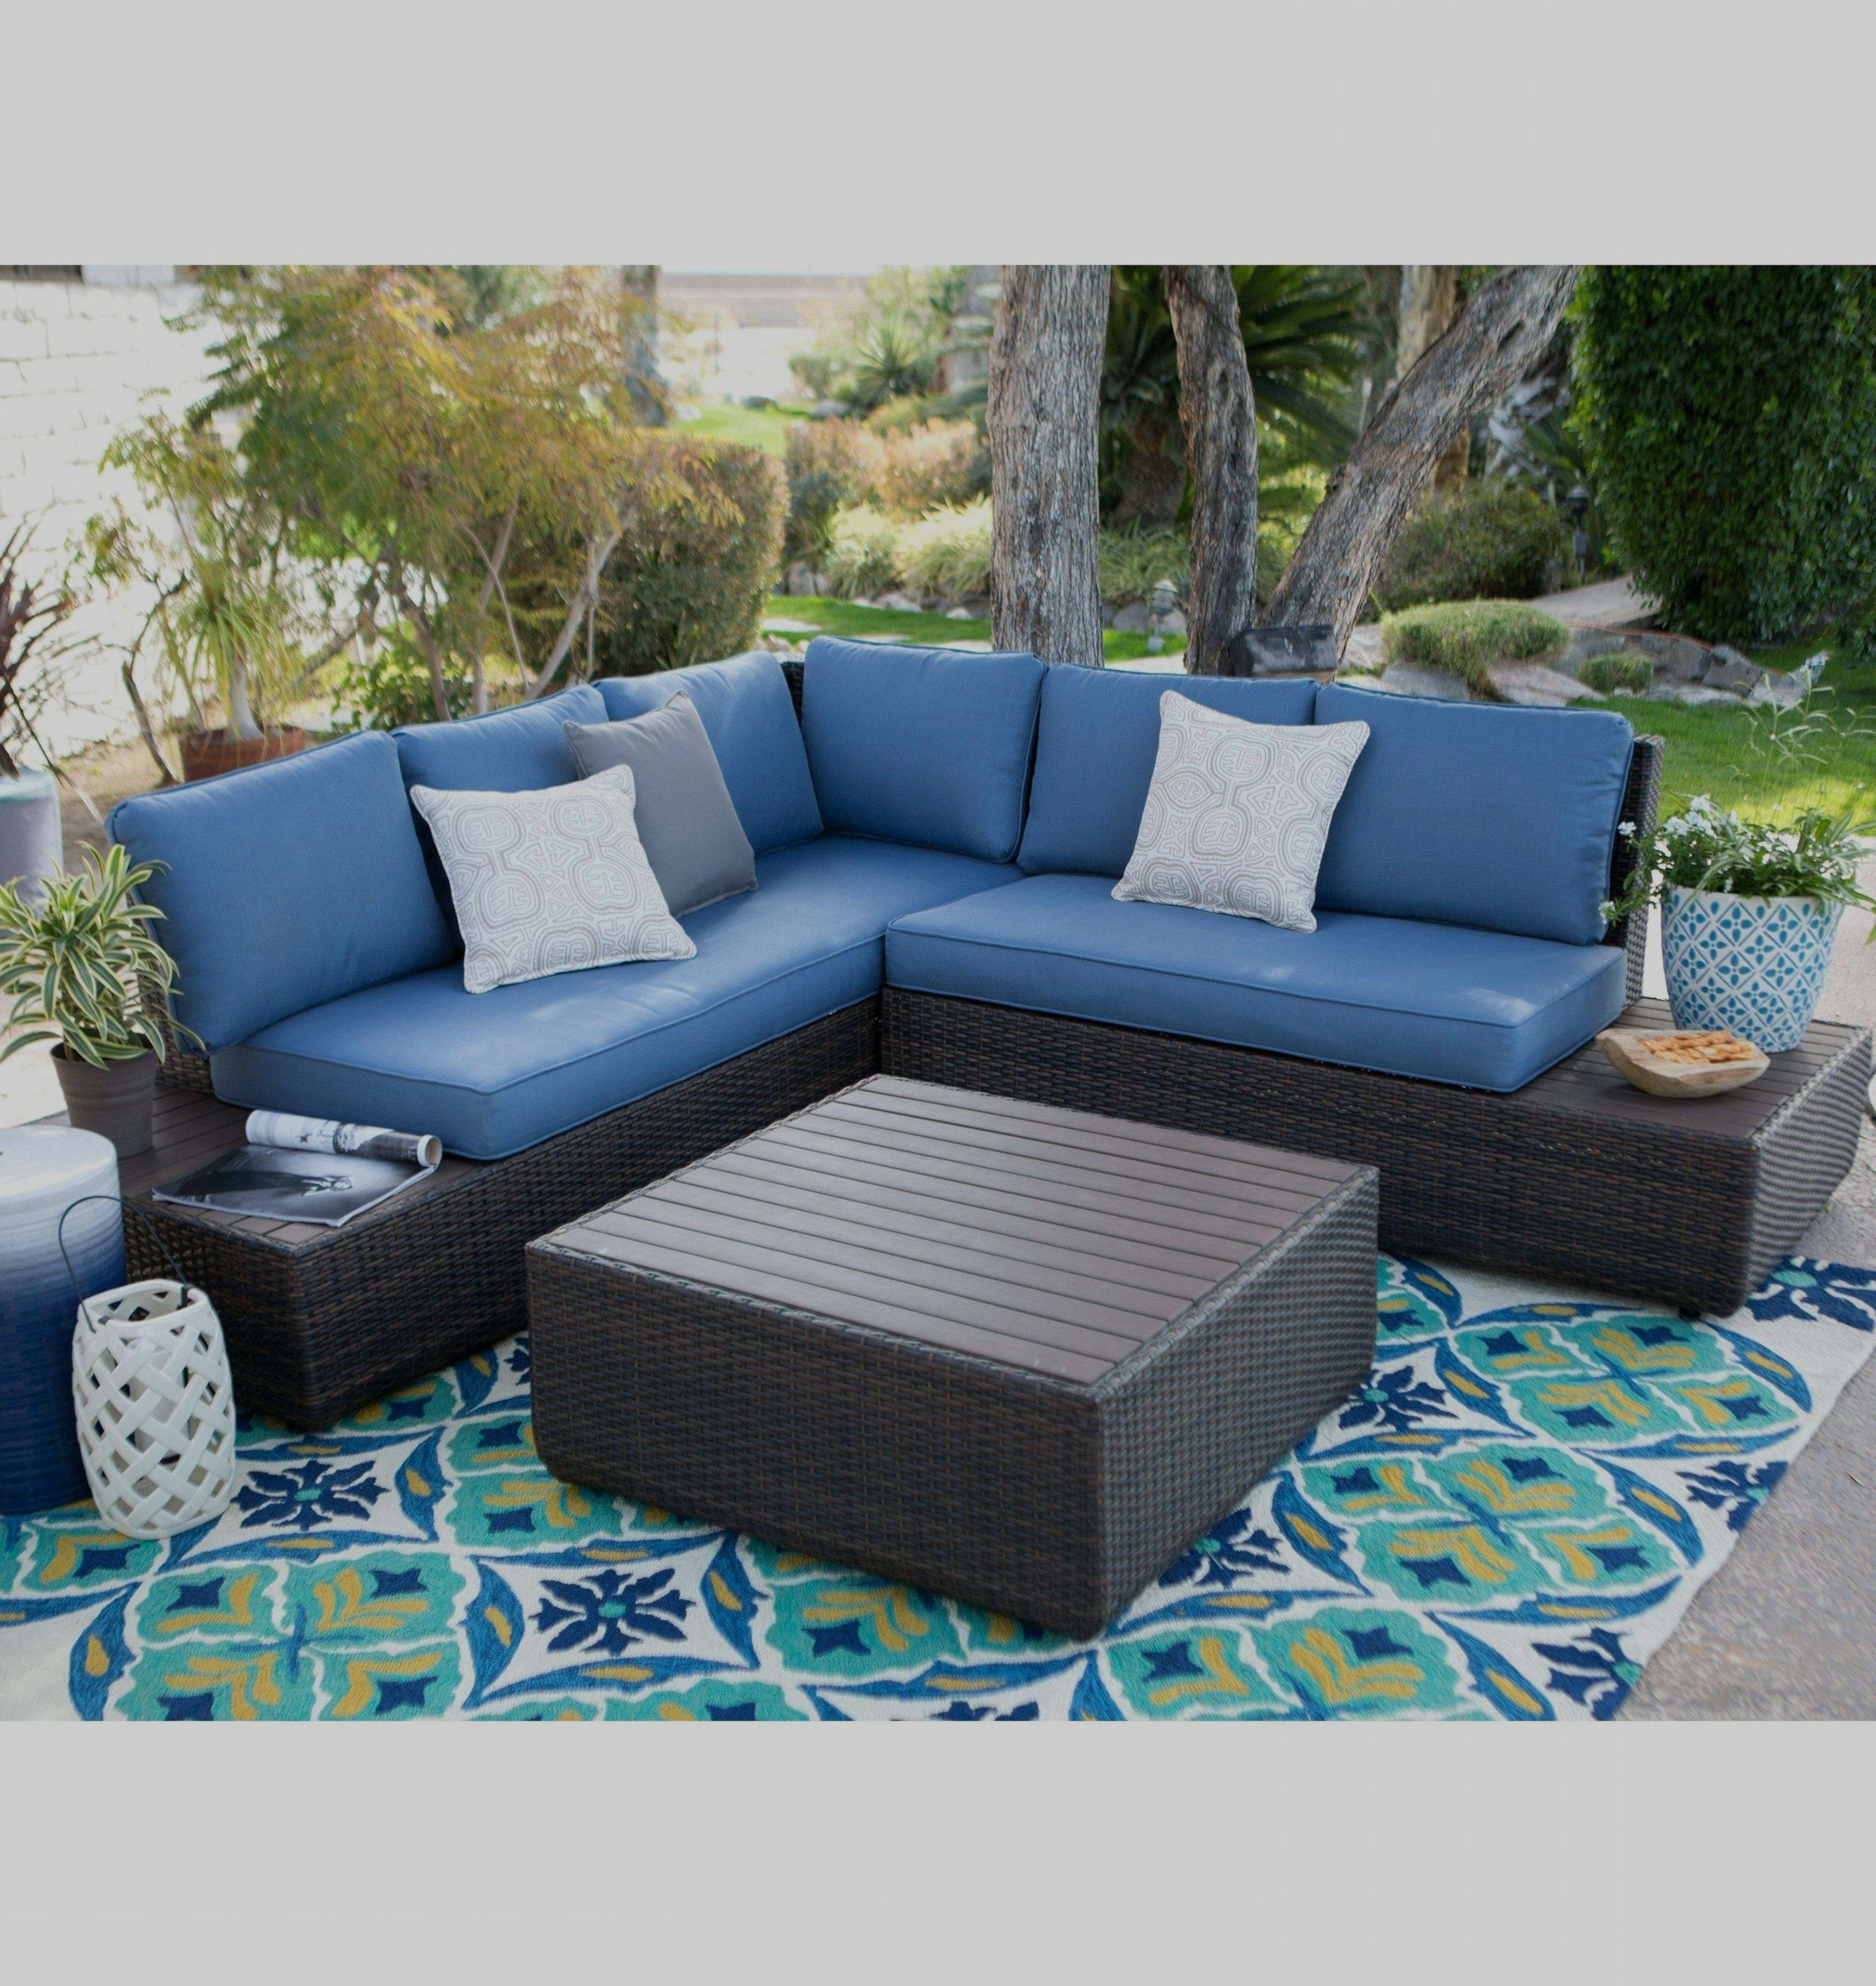 26 Attractive Cushion Foam For Sale Wicker Loveseat Outdoor Sectional Sofa Outdoor Furniture Cushions